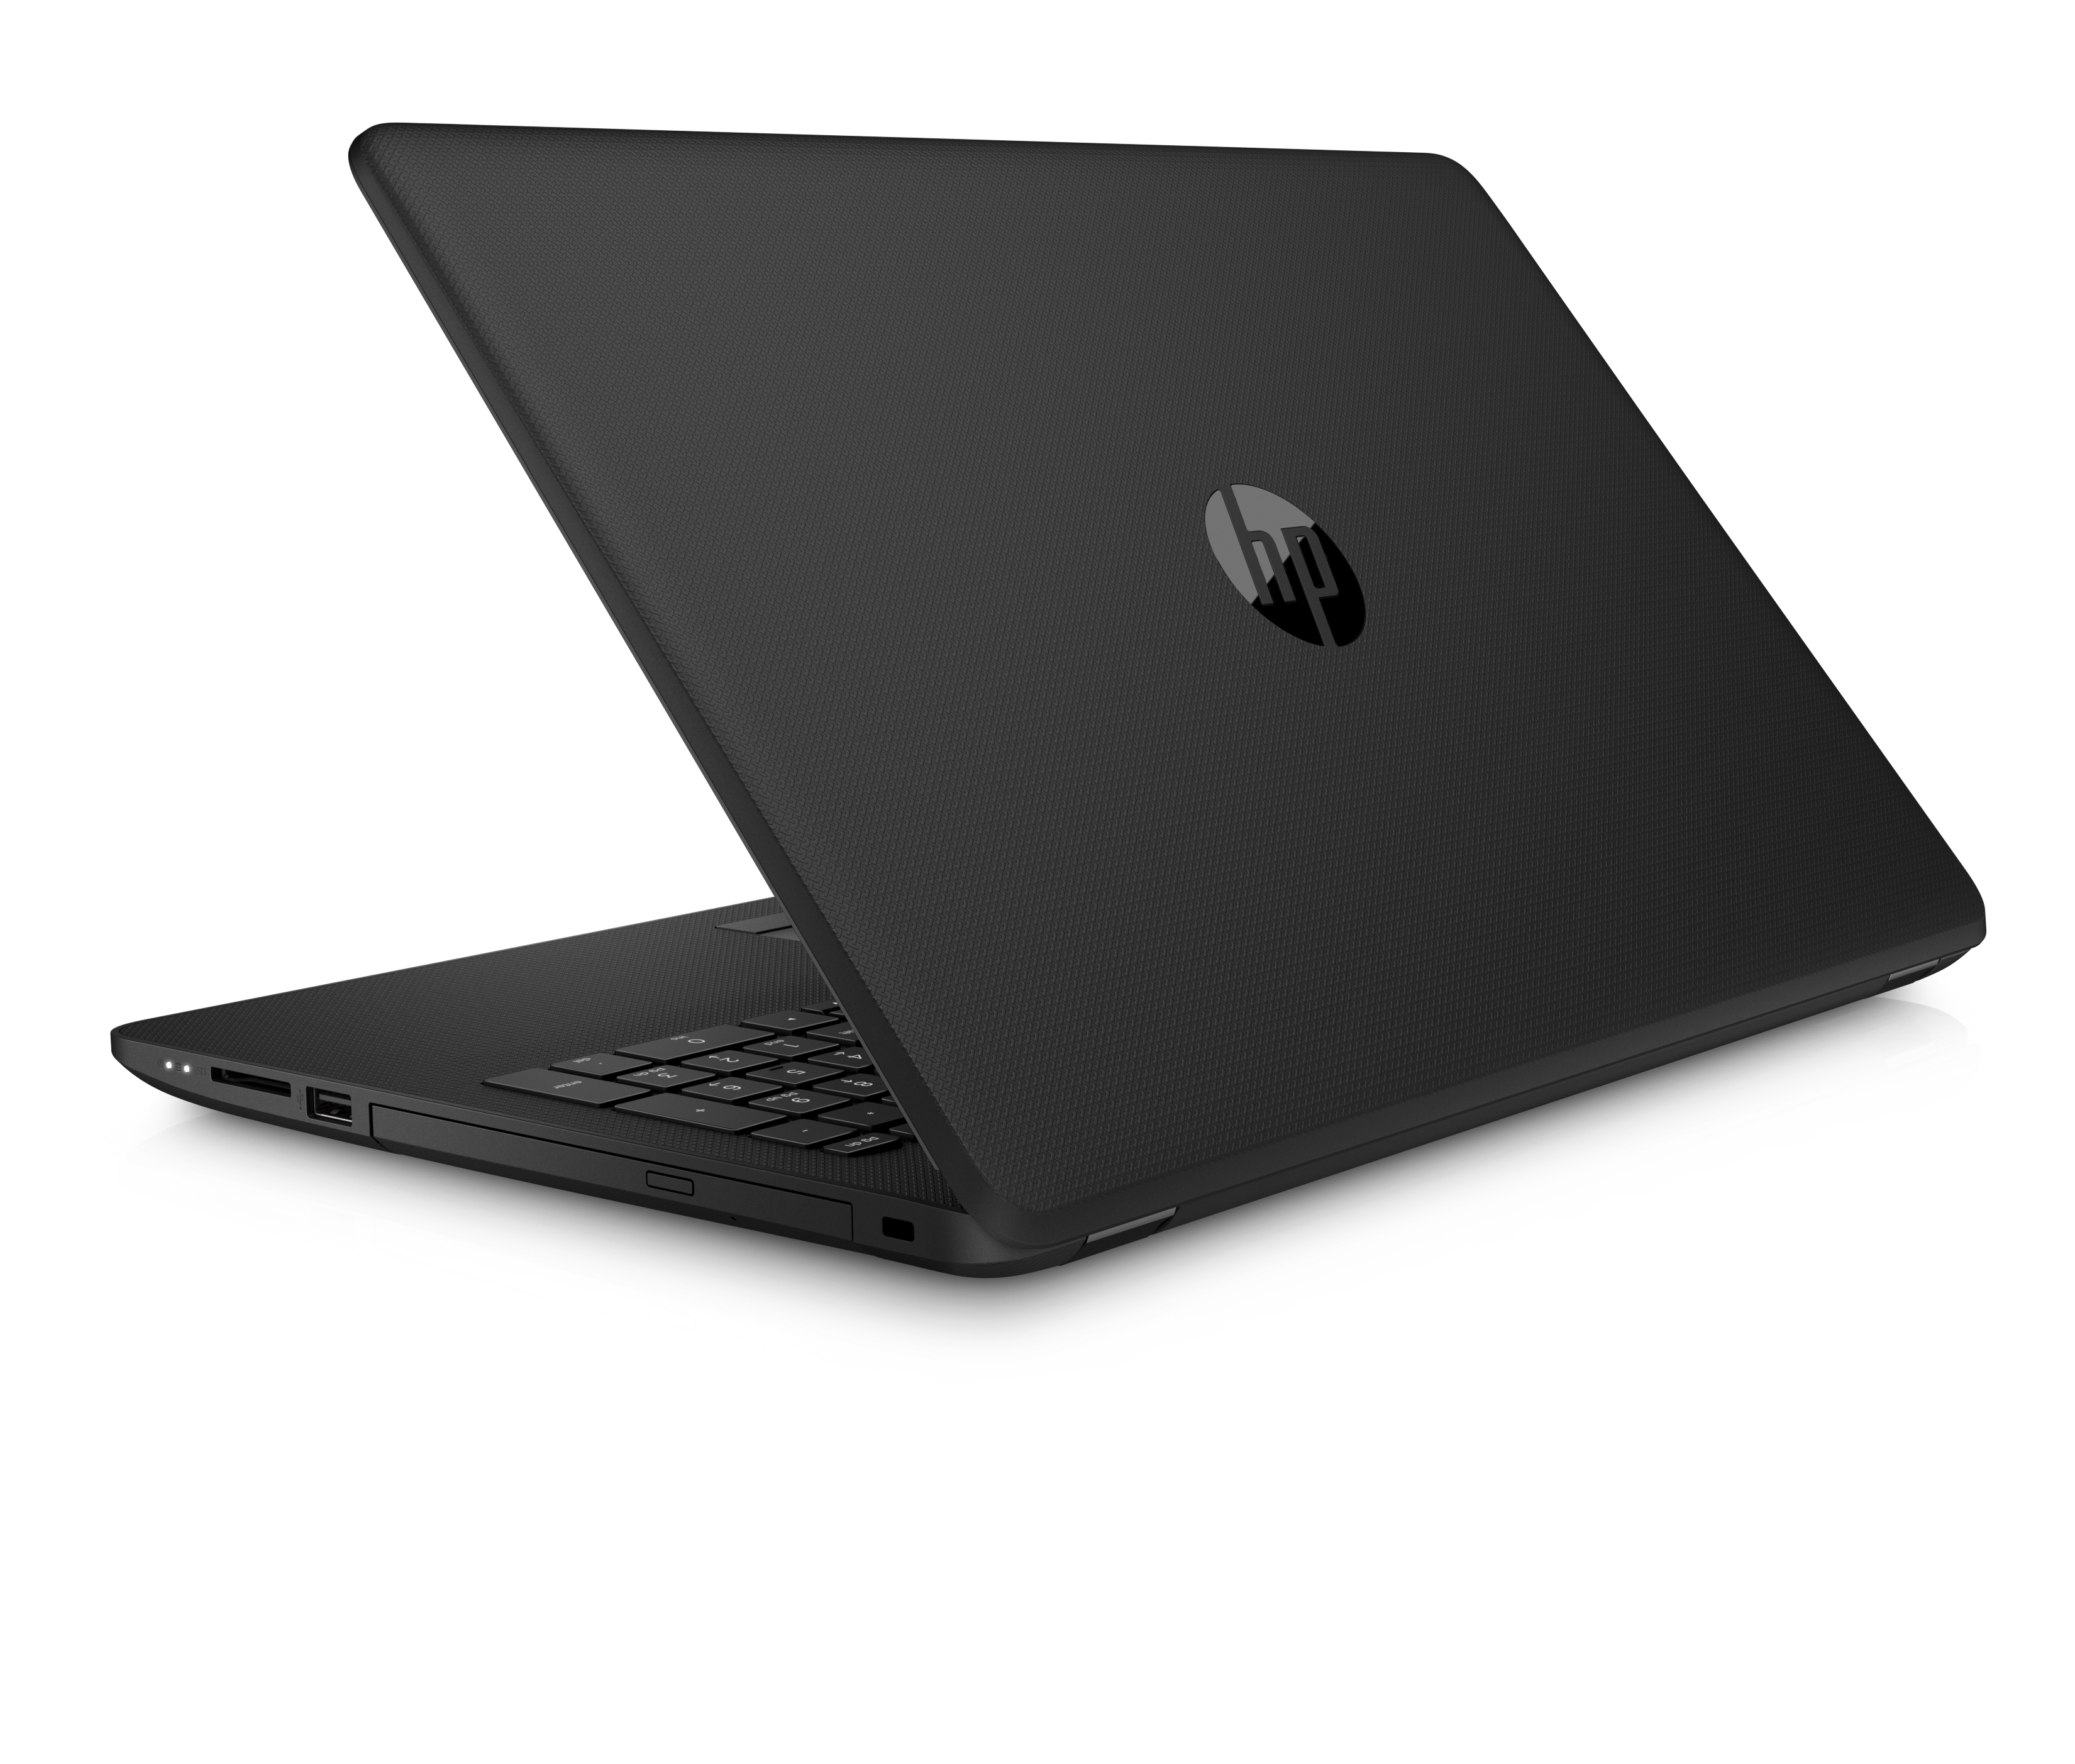 "HP 15-BS020WM, 15.6"" Touch Laptop, Windows 10, Intel Pentium N3710 Quad Core Processor, 4GB Memory, 500GB Hard Drive, DVD"